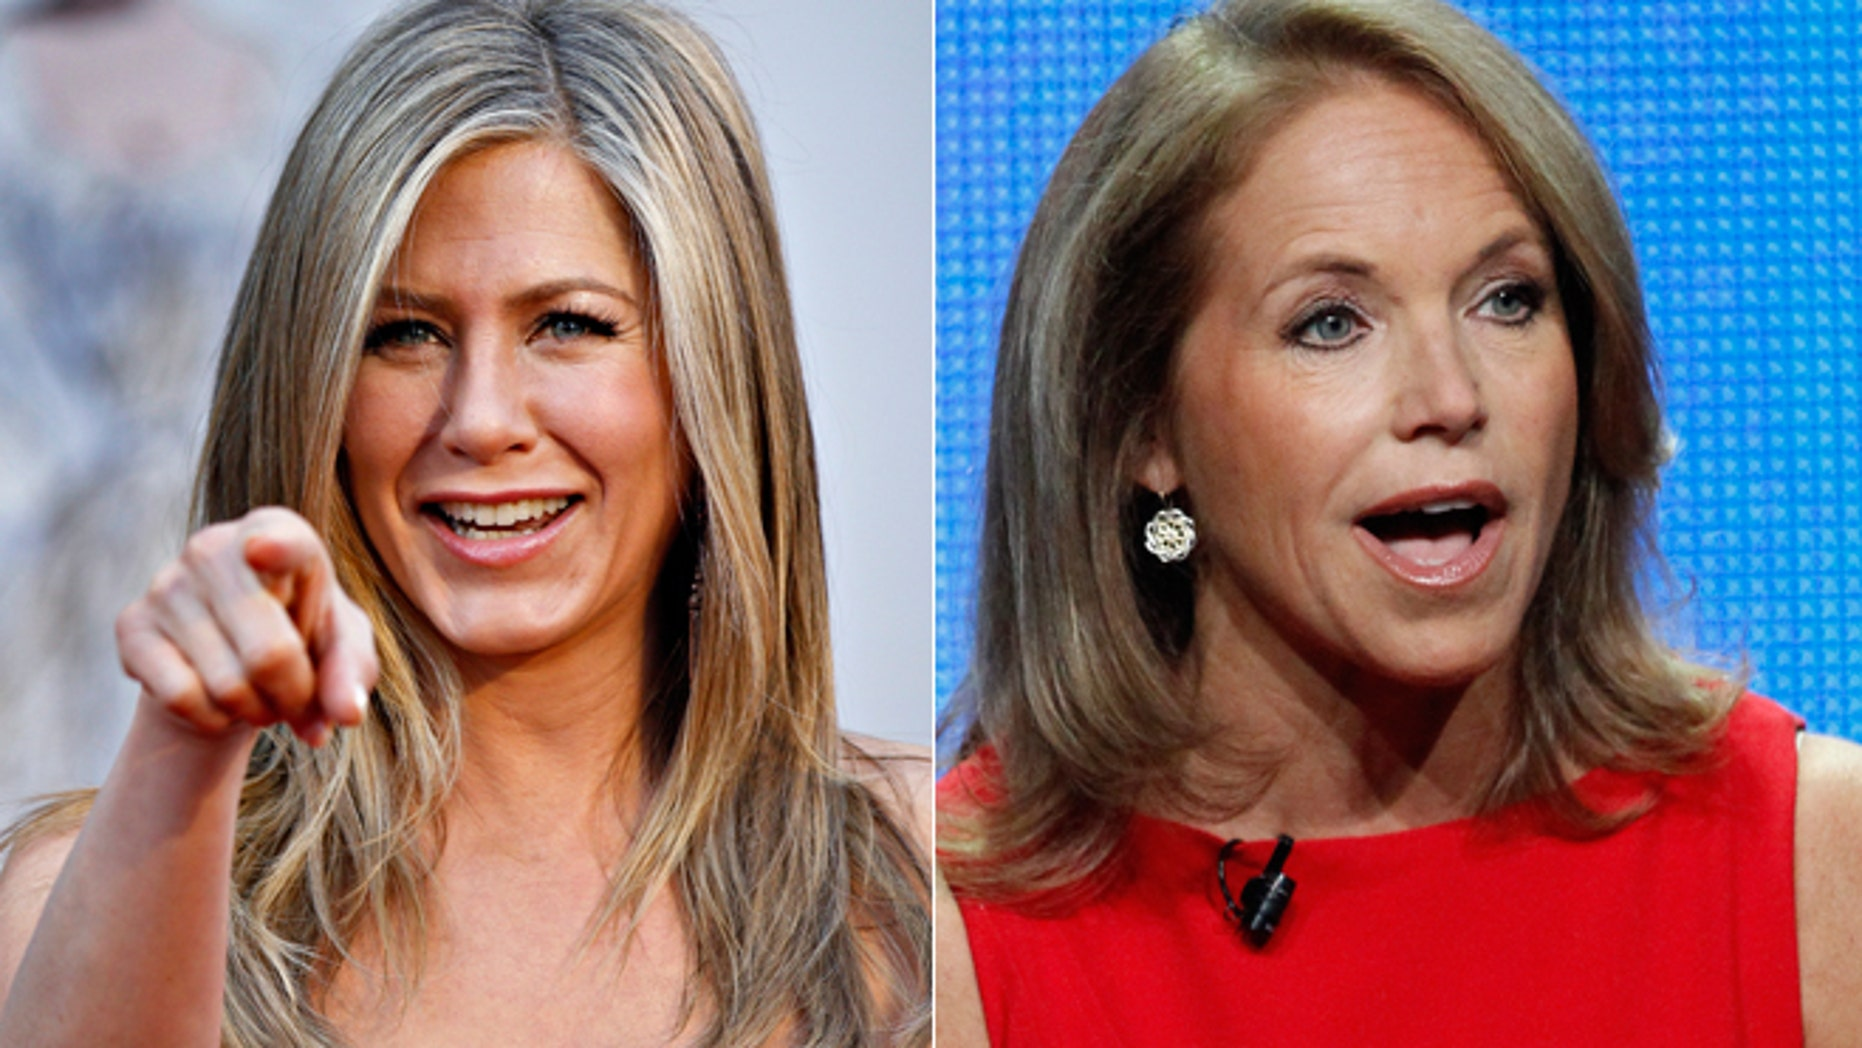 Jennifer Aniston, left, and Katie Couric are shown.